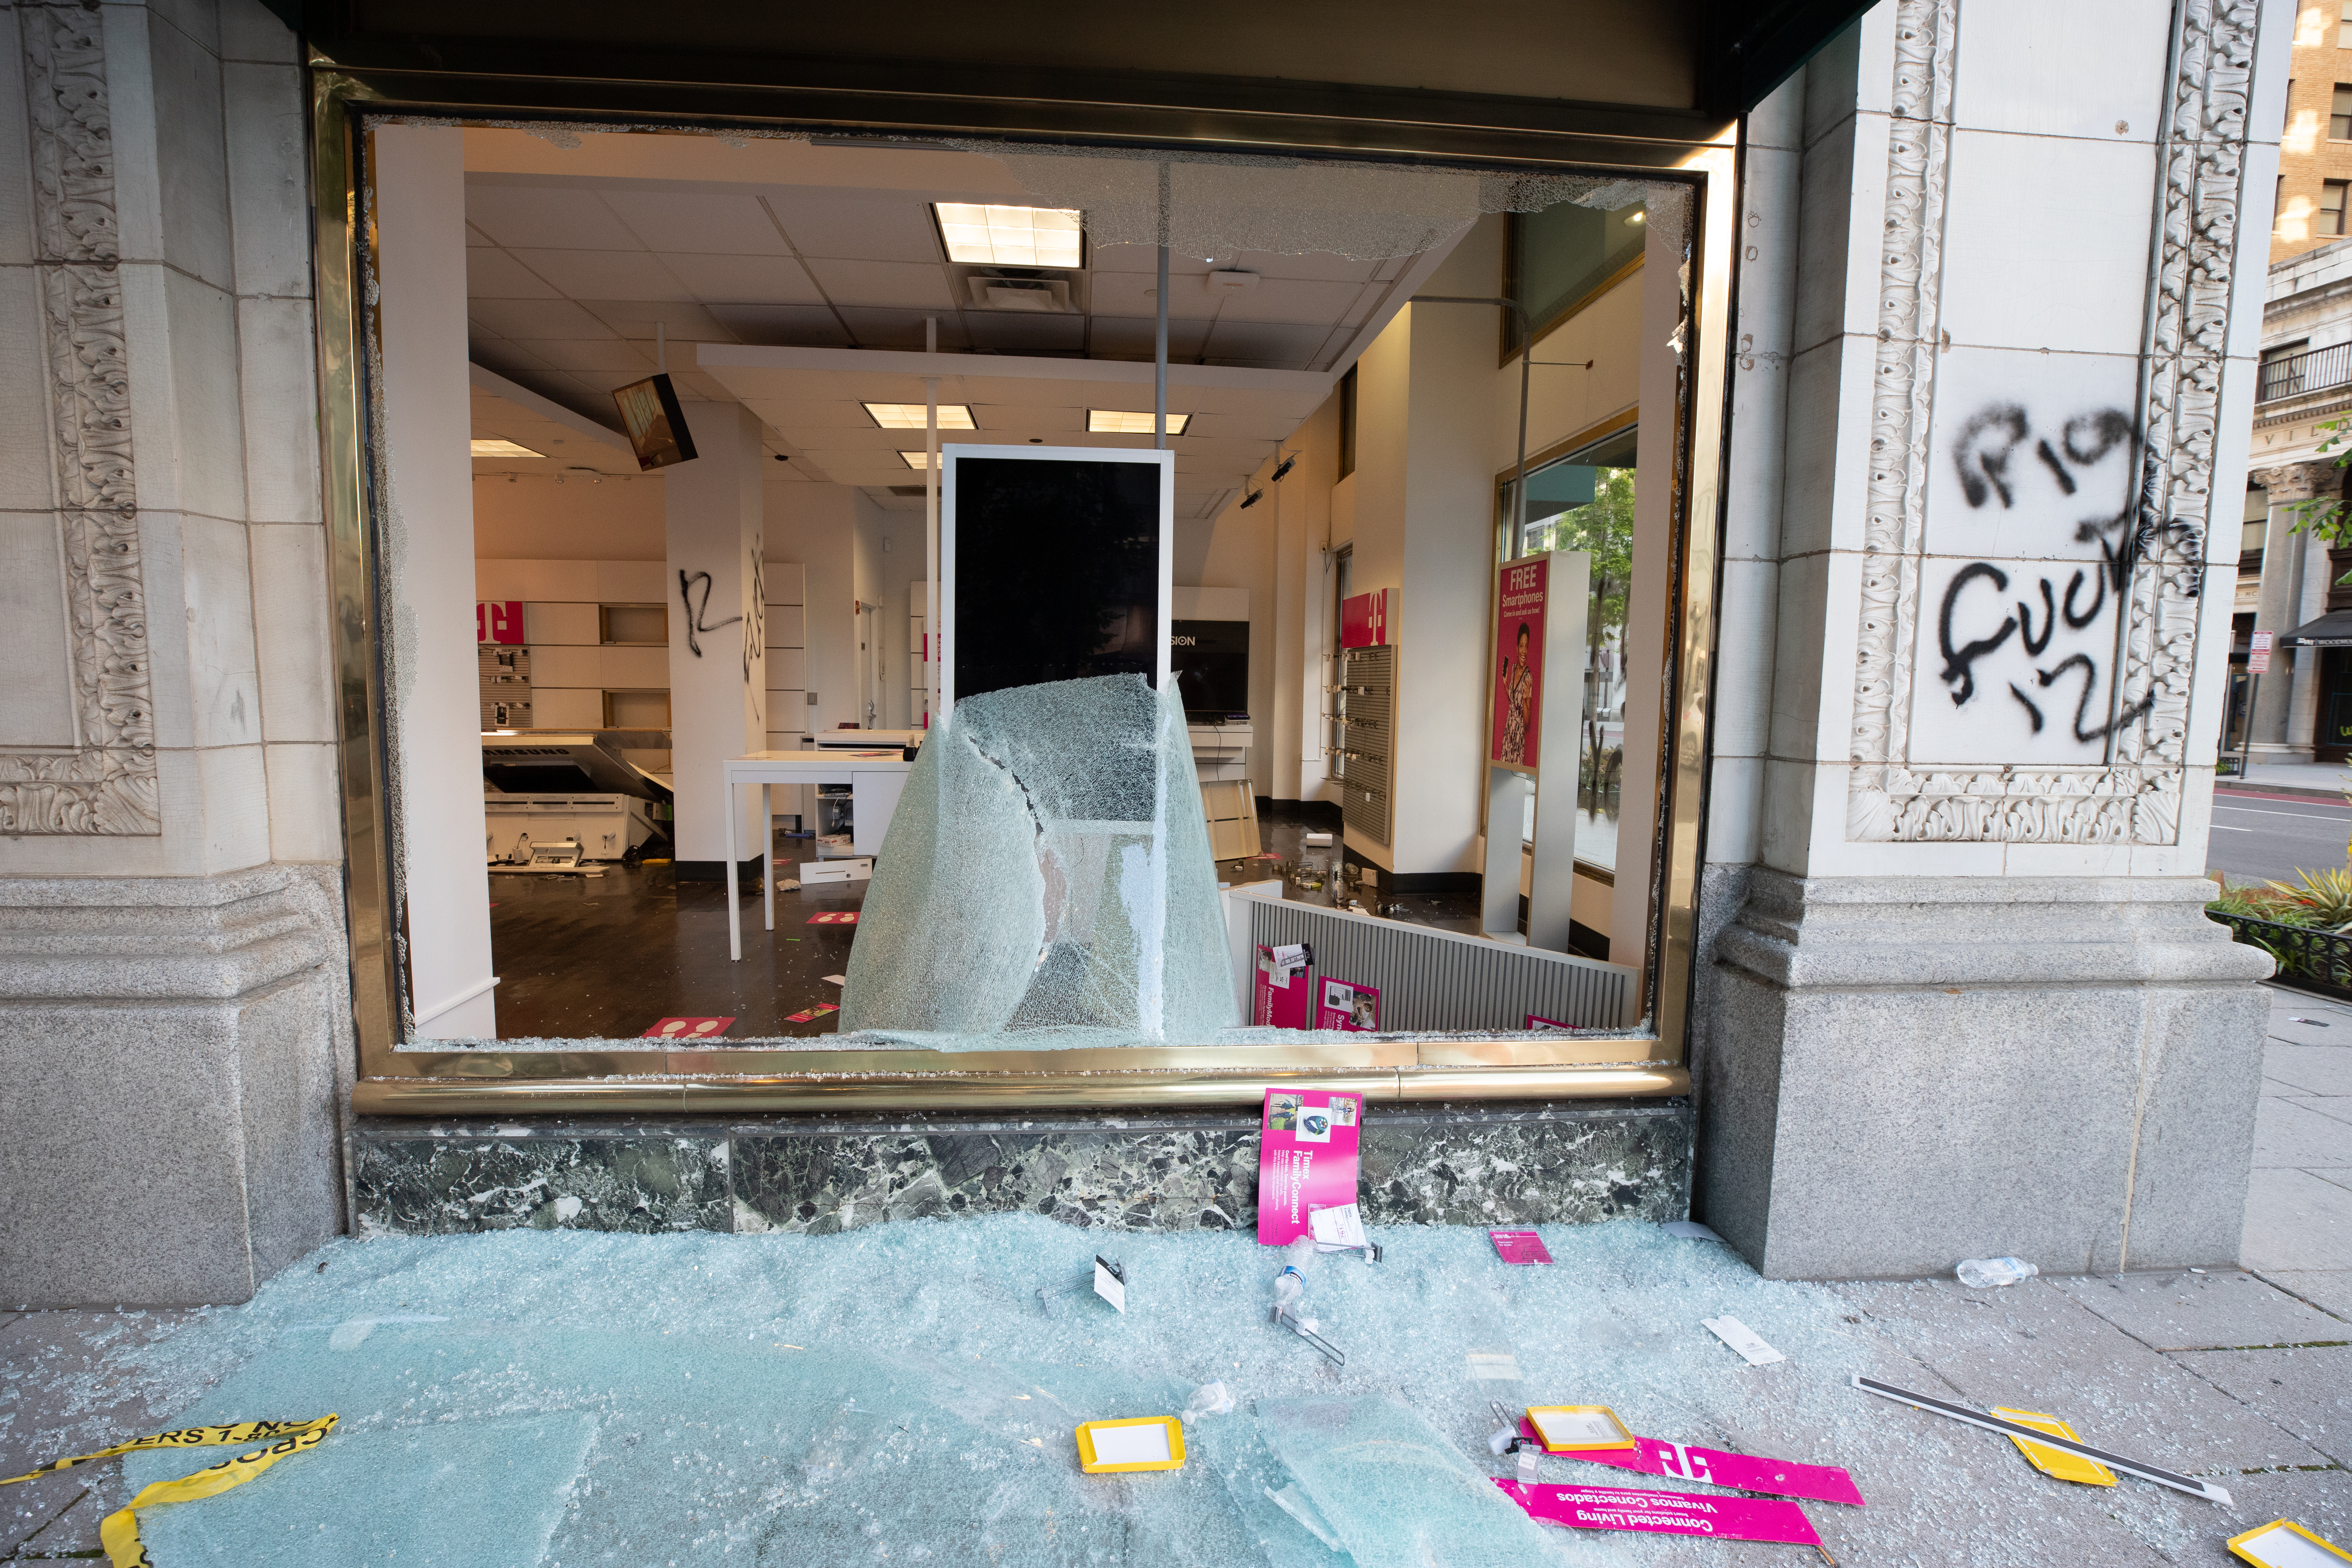 T-Mobile retail store on the corner of 15th St. NW and H Street. (Photo: Kaylee C. Greenlee for The Daily Caller)